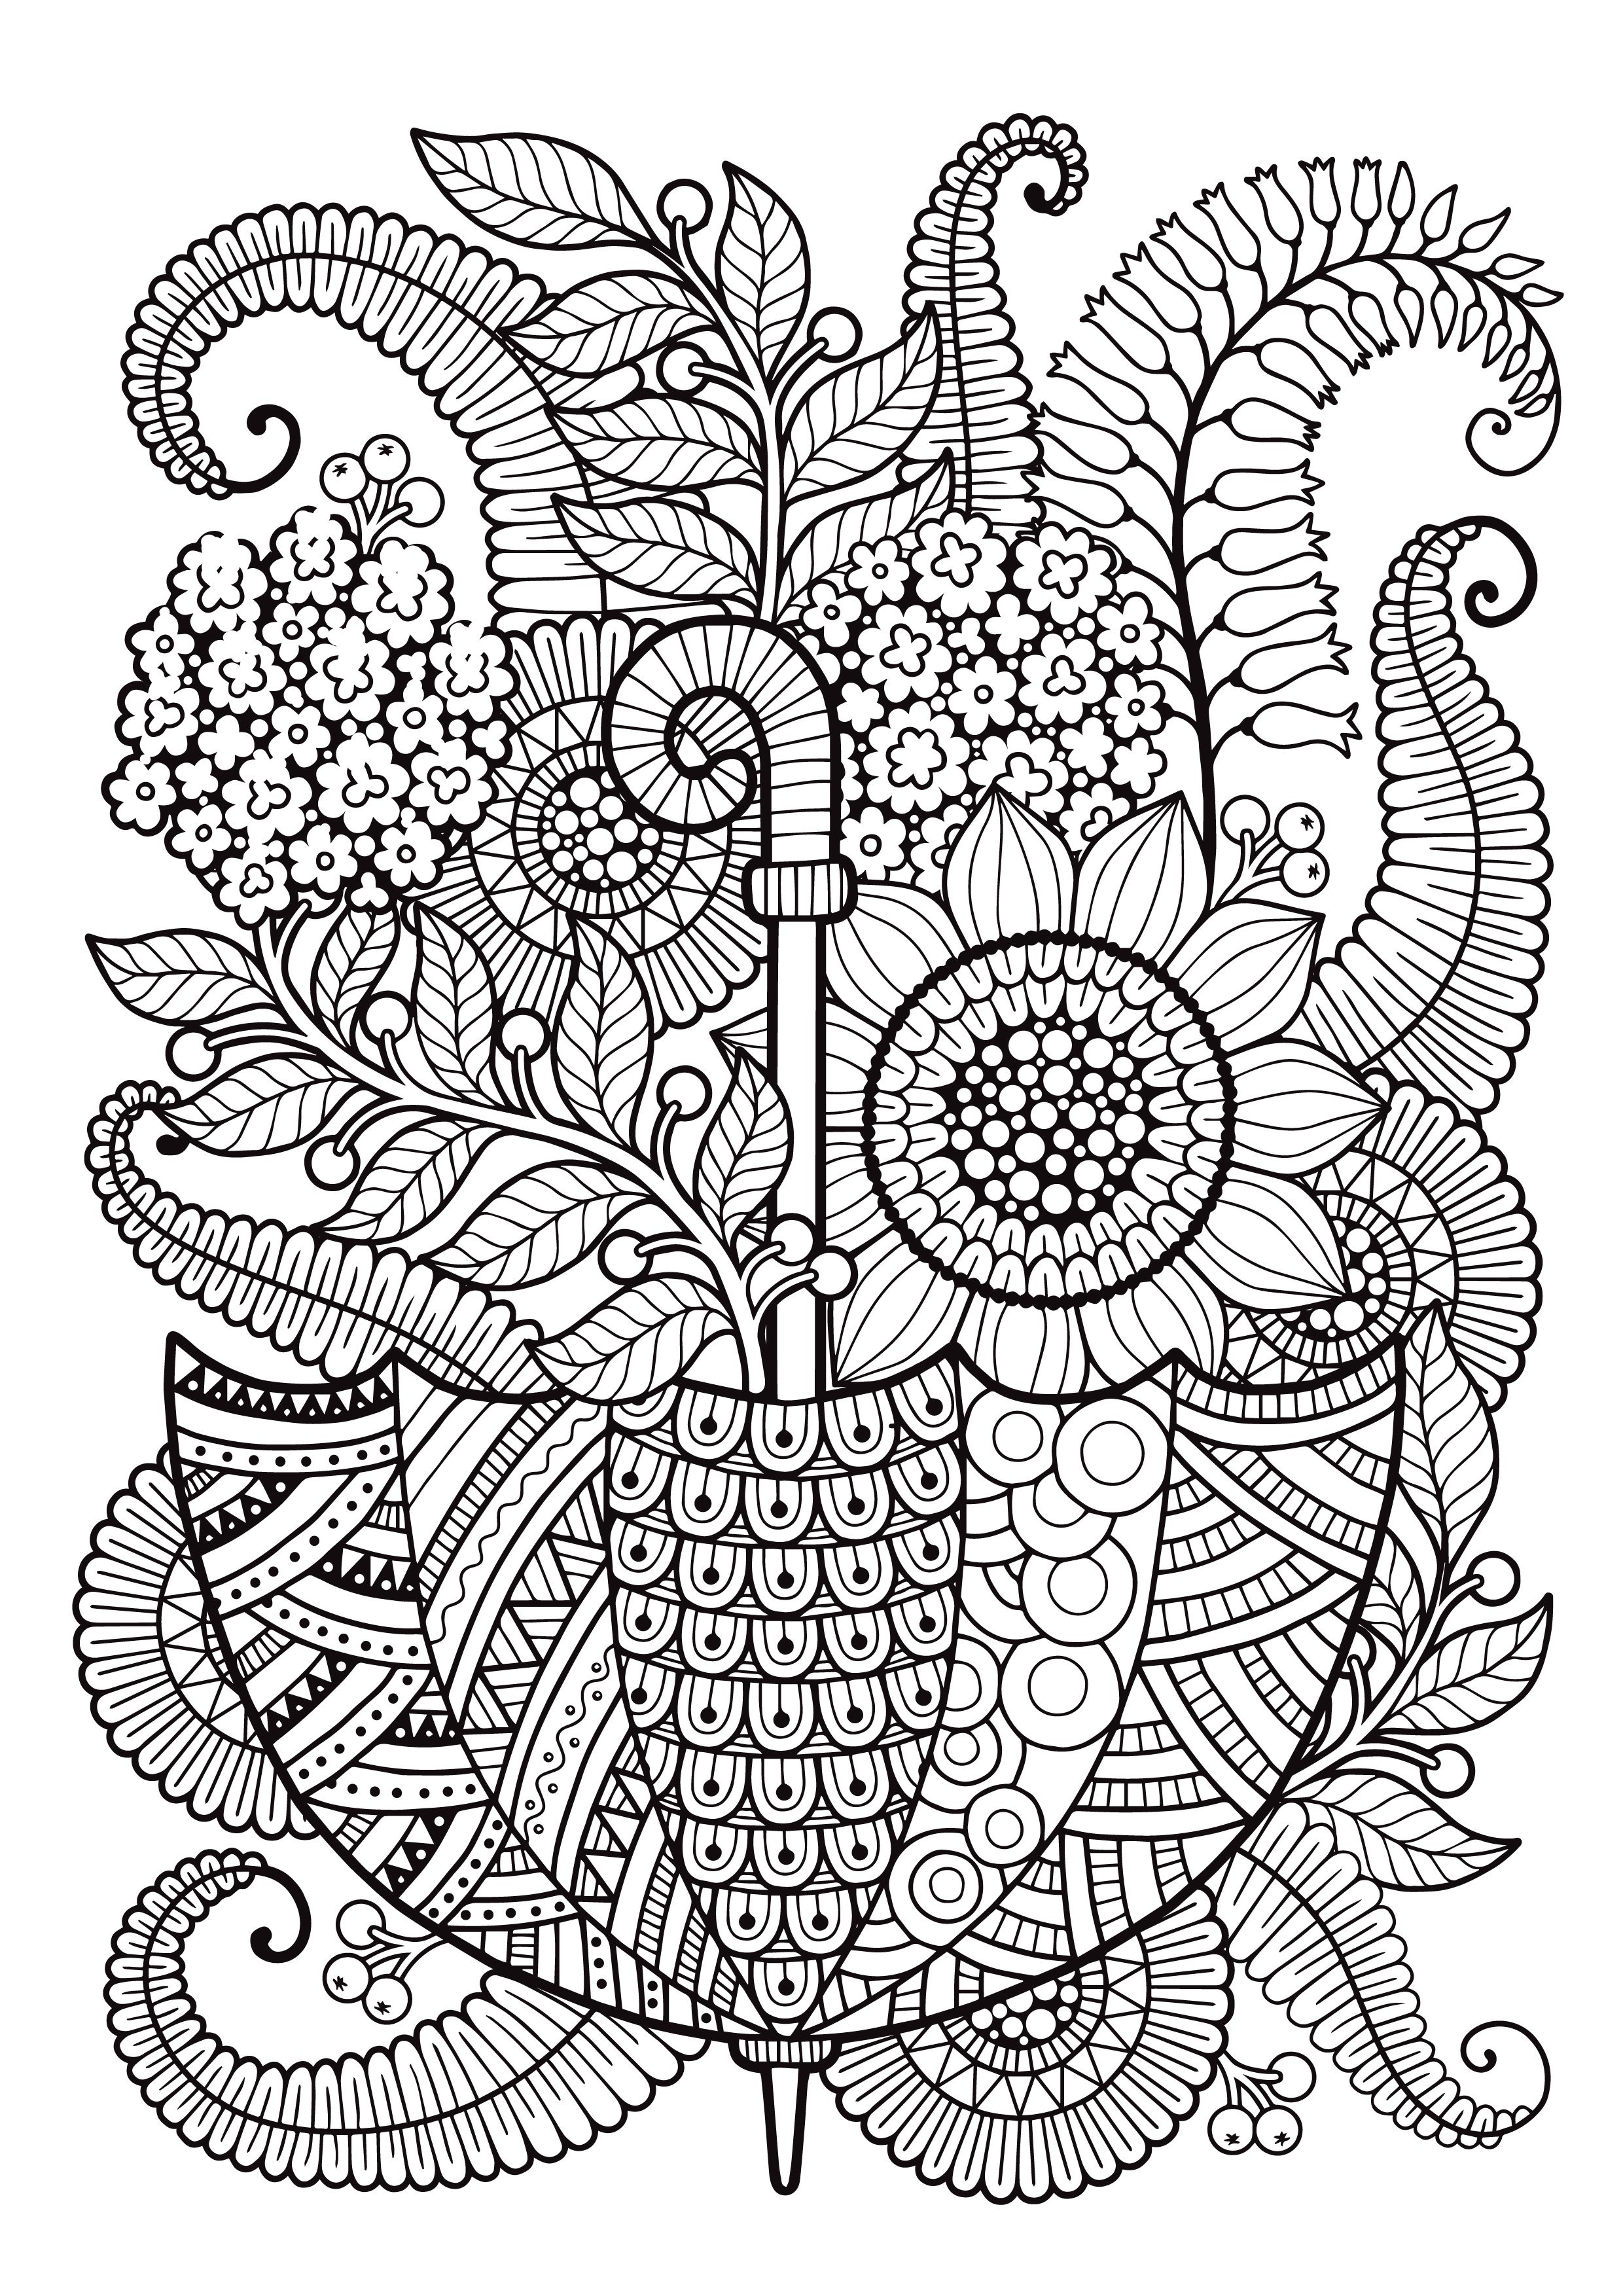 Printable Mindfulness Coloring Pages